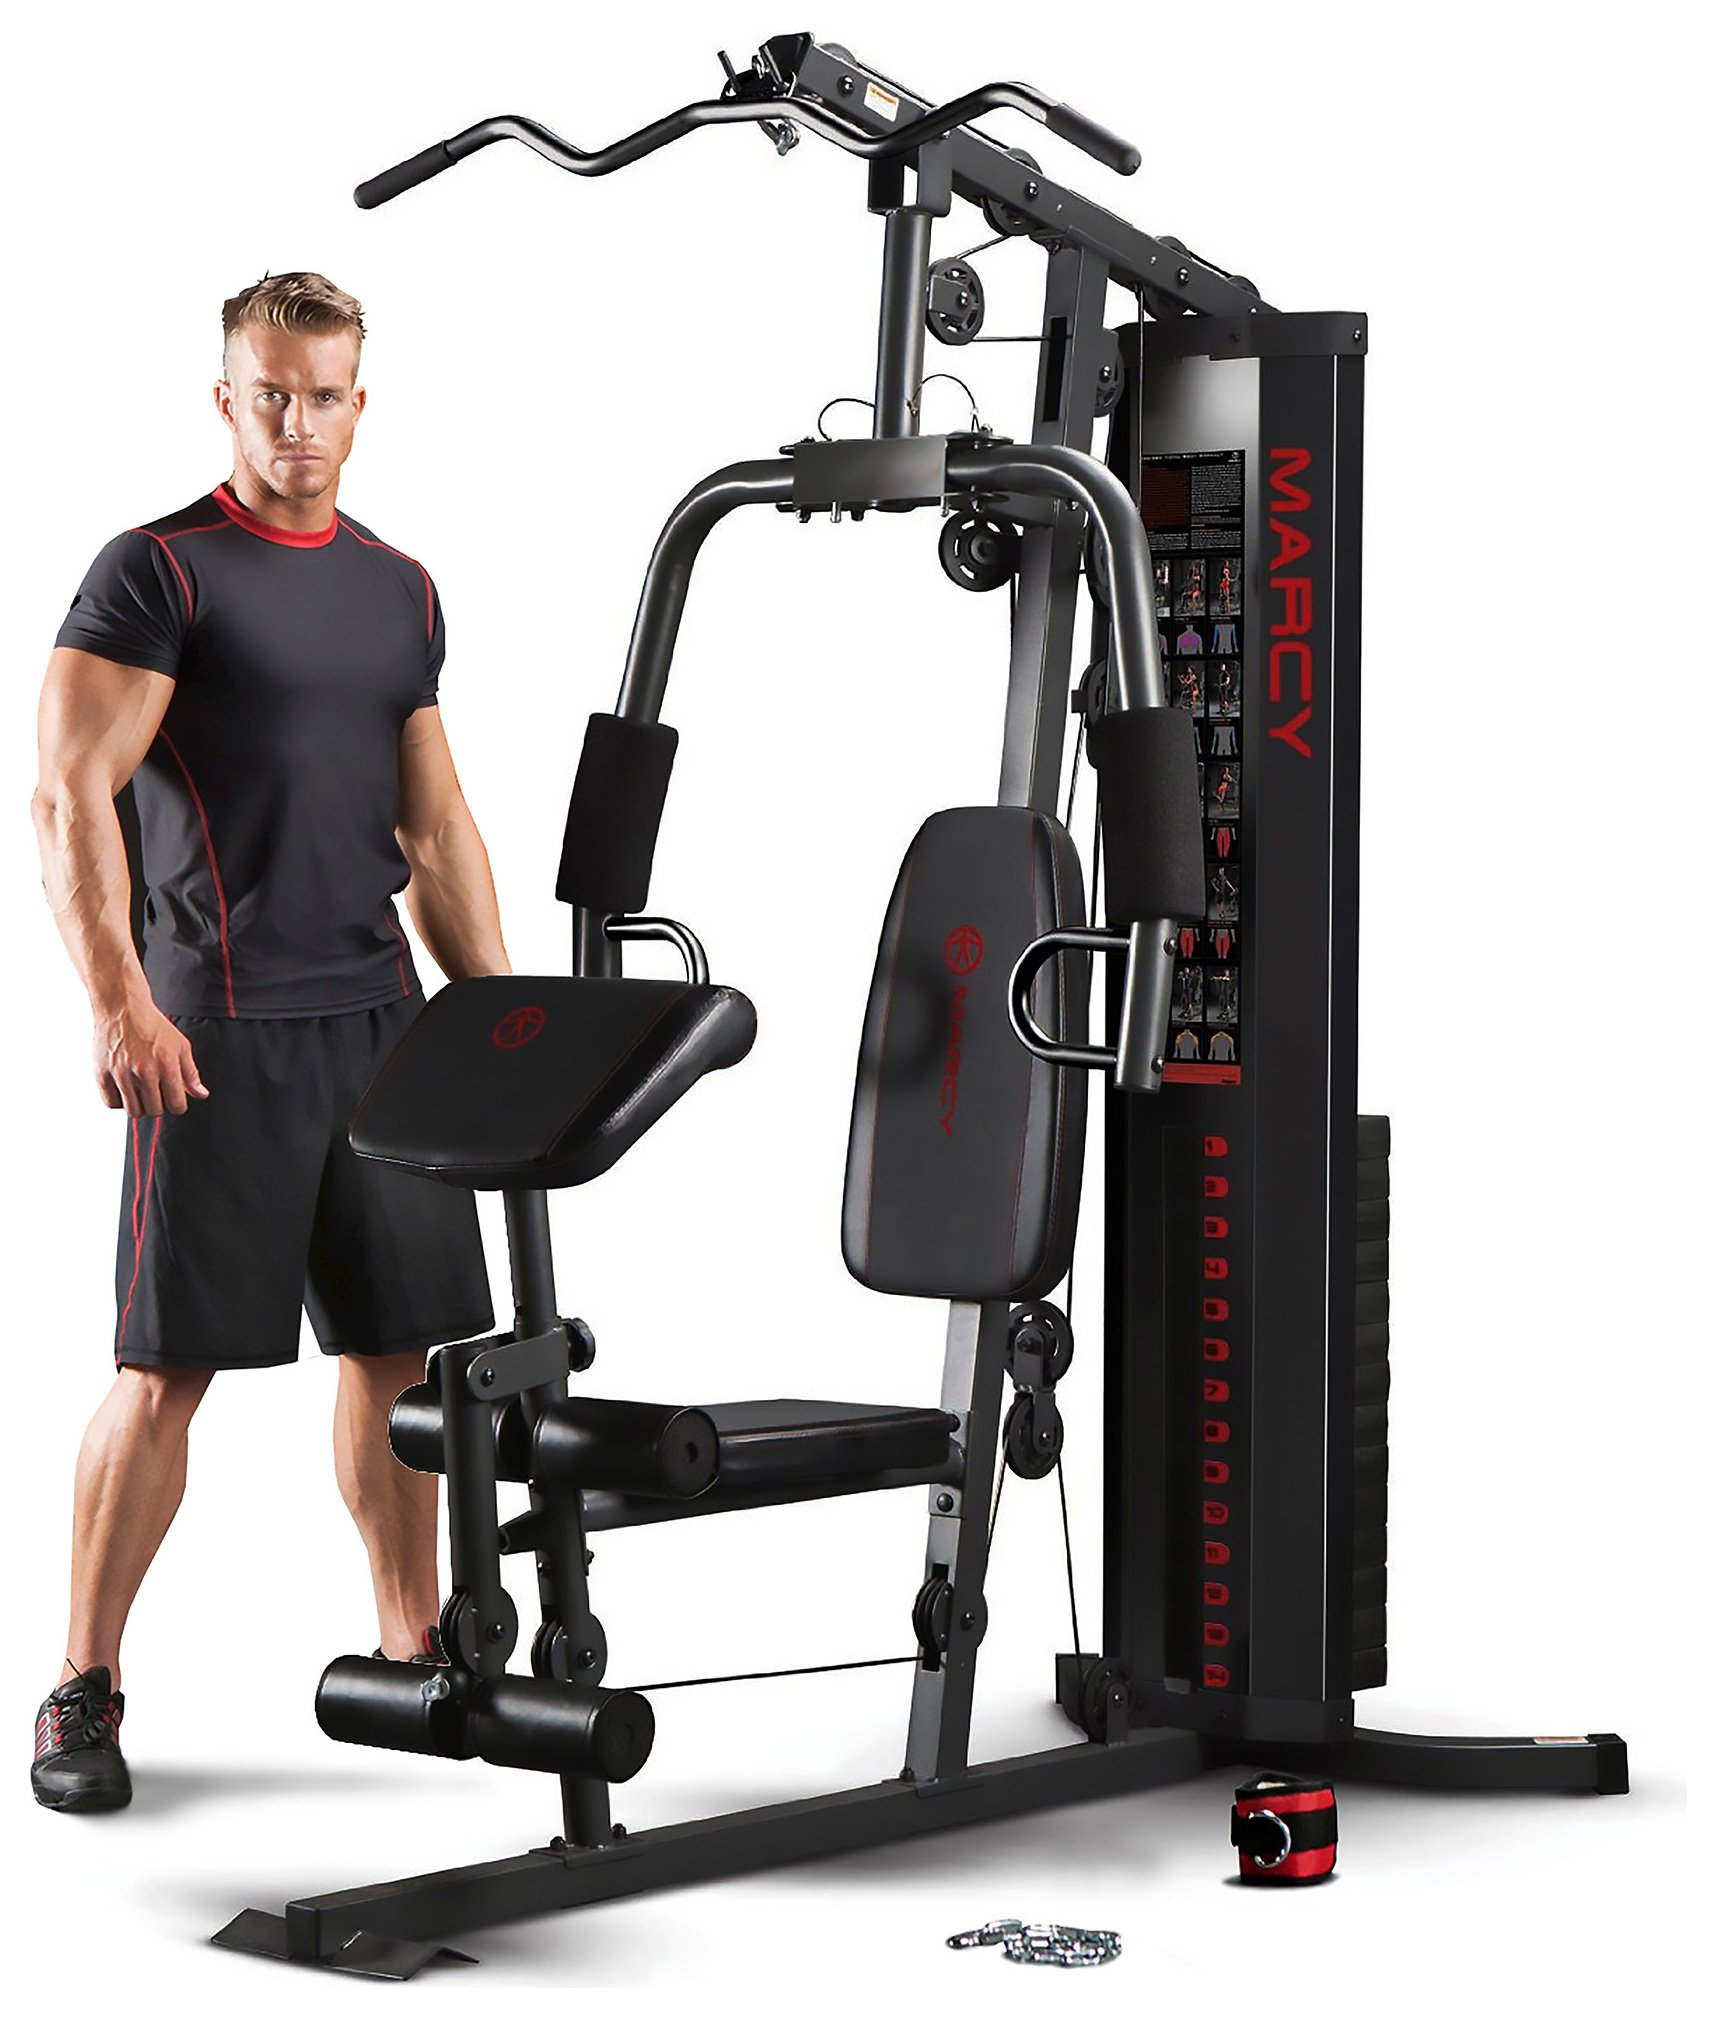 Marcy eclipse hg compact home gym argos price